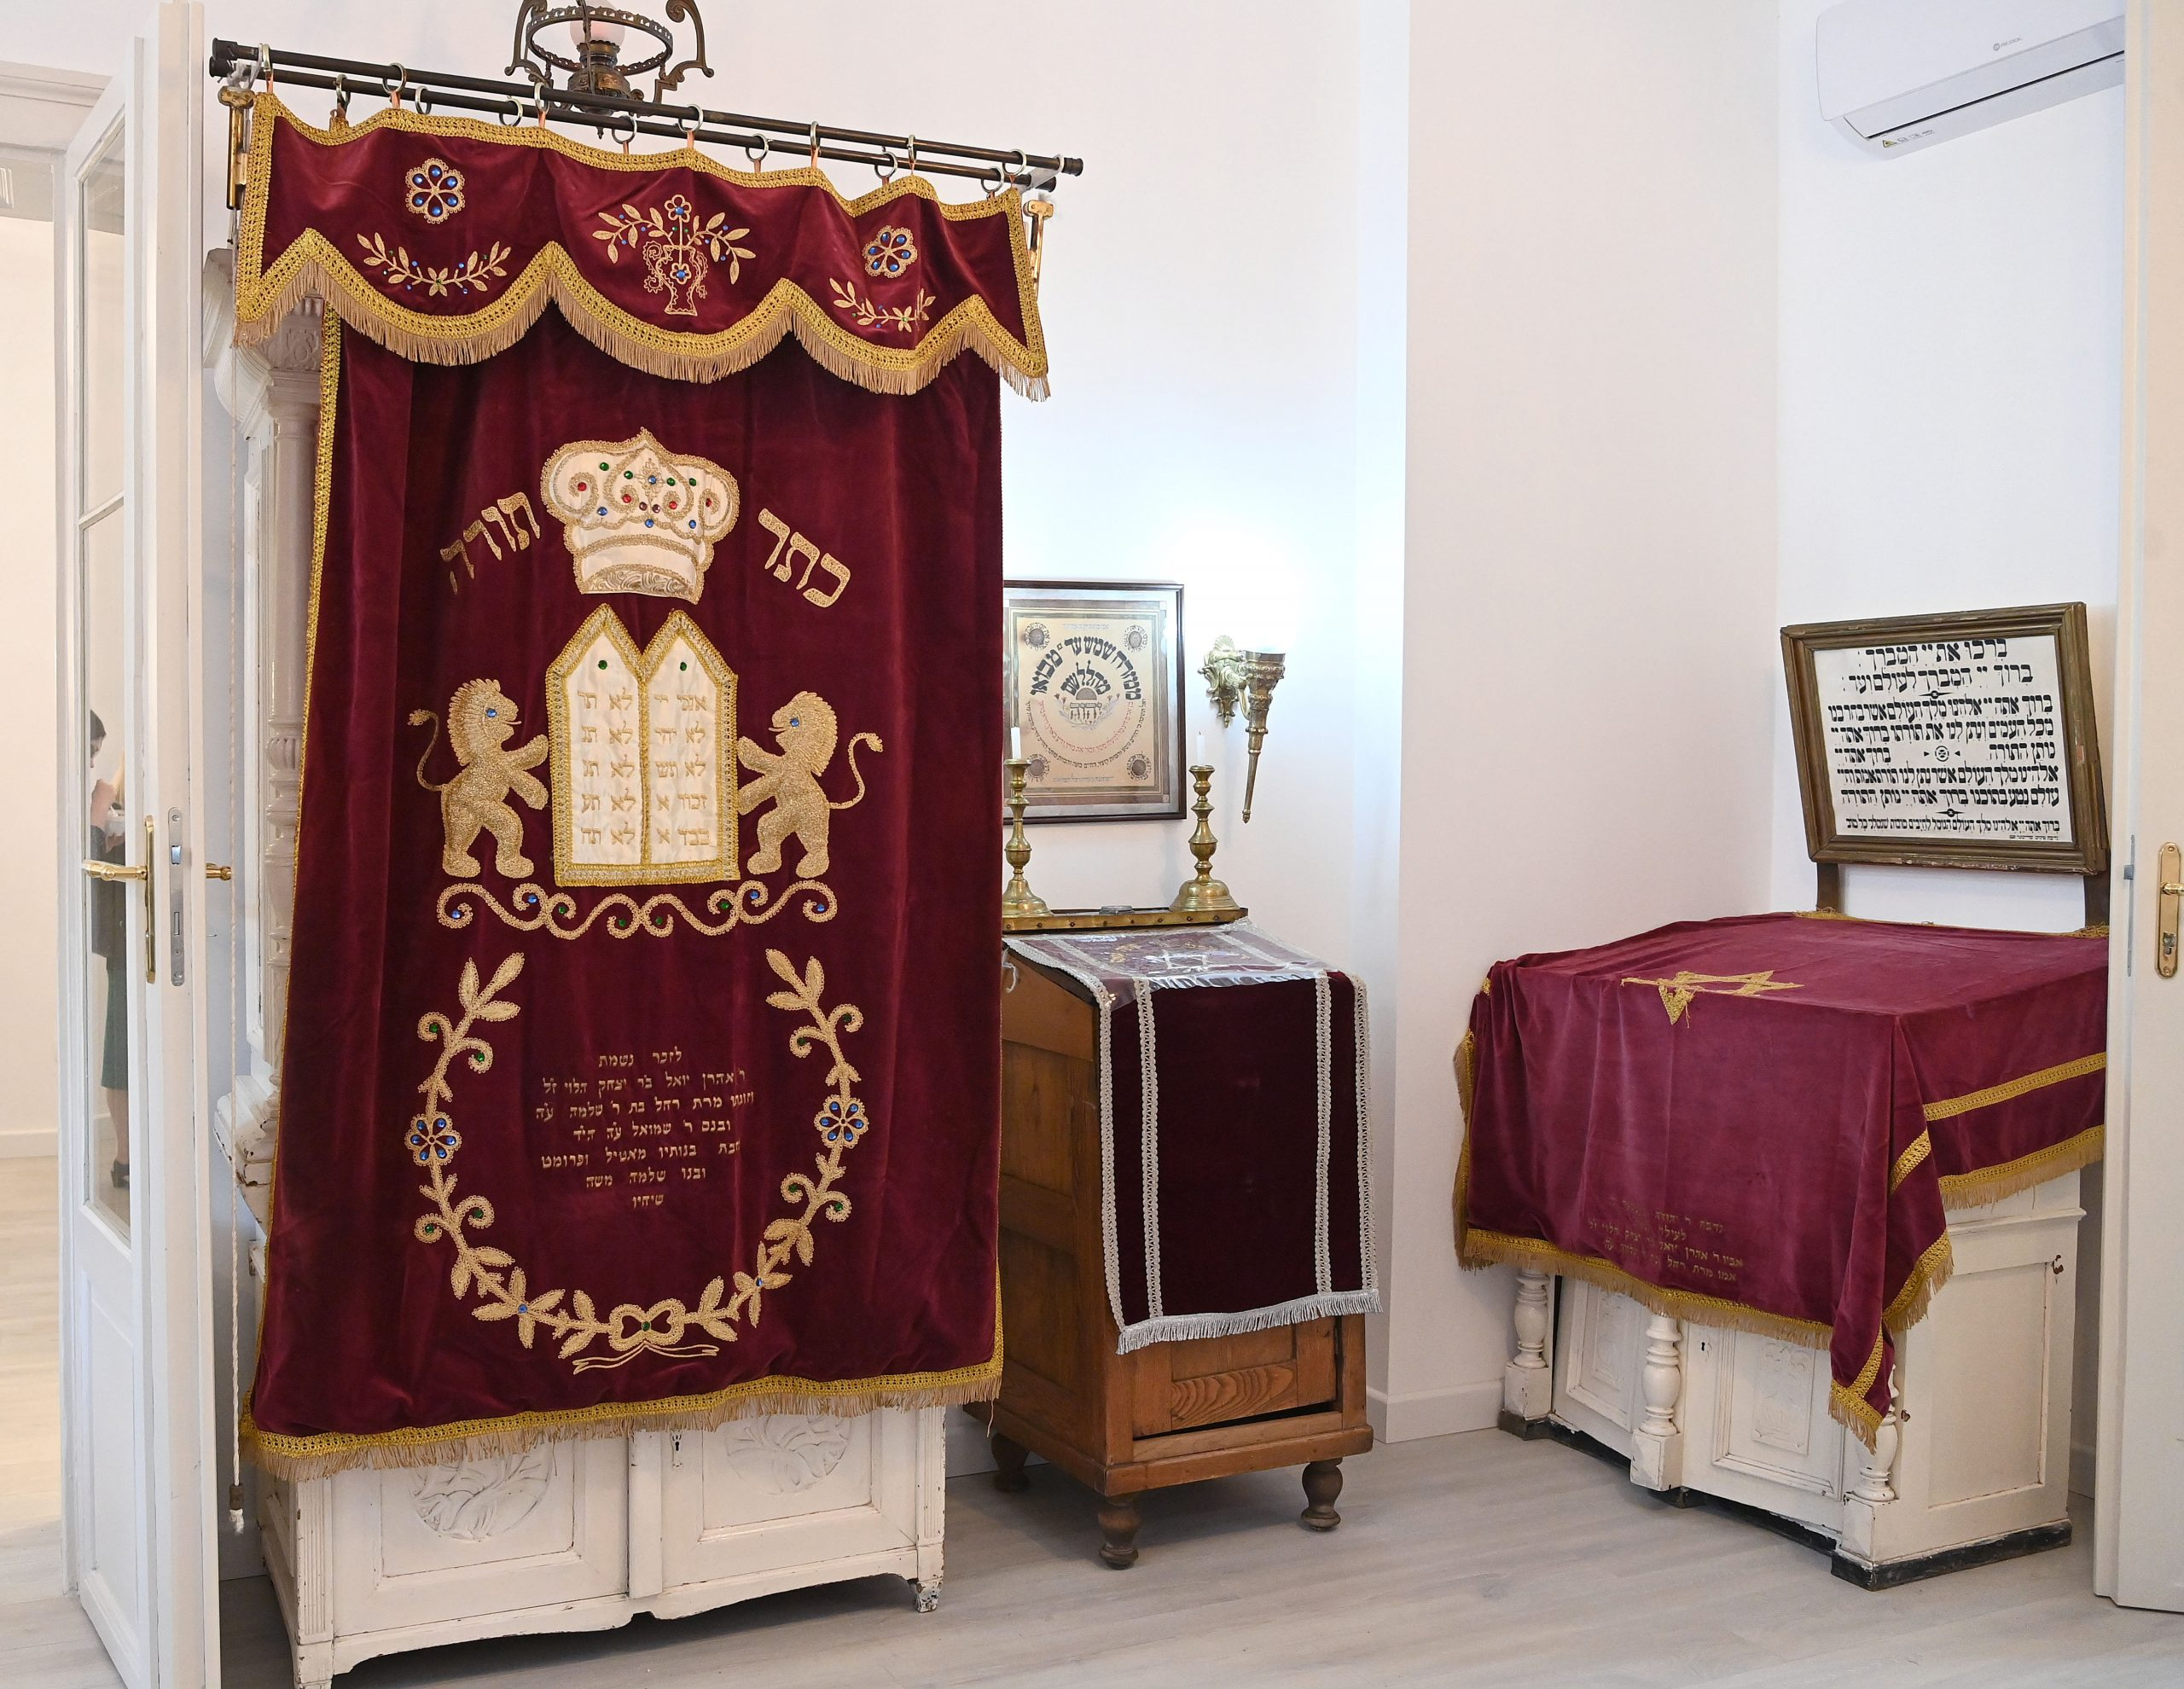 New Synagogue Inaugurated in Budapest with Generous State Funding